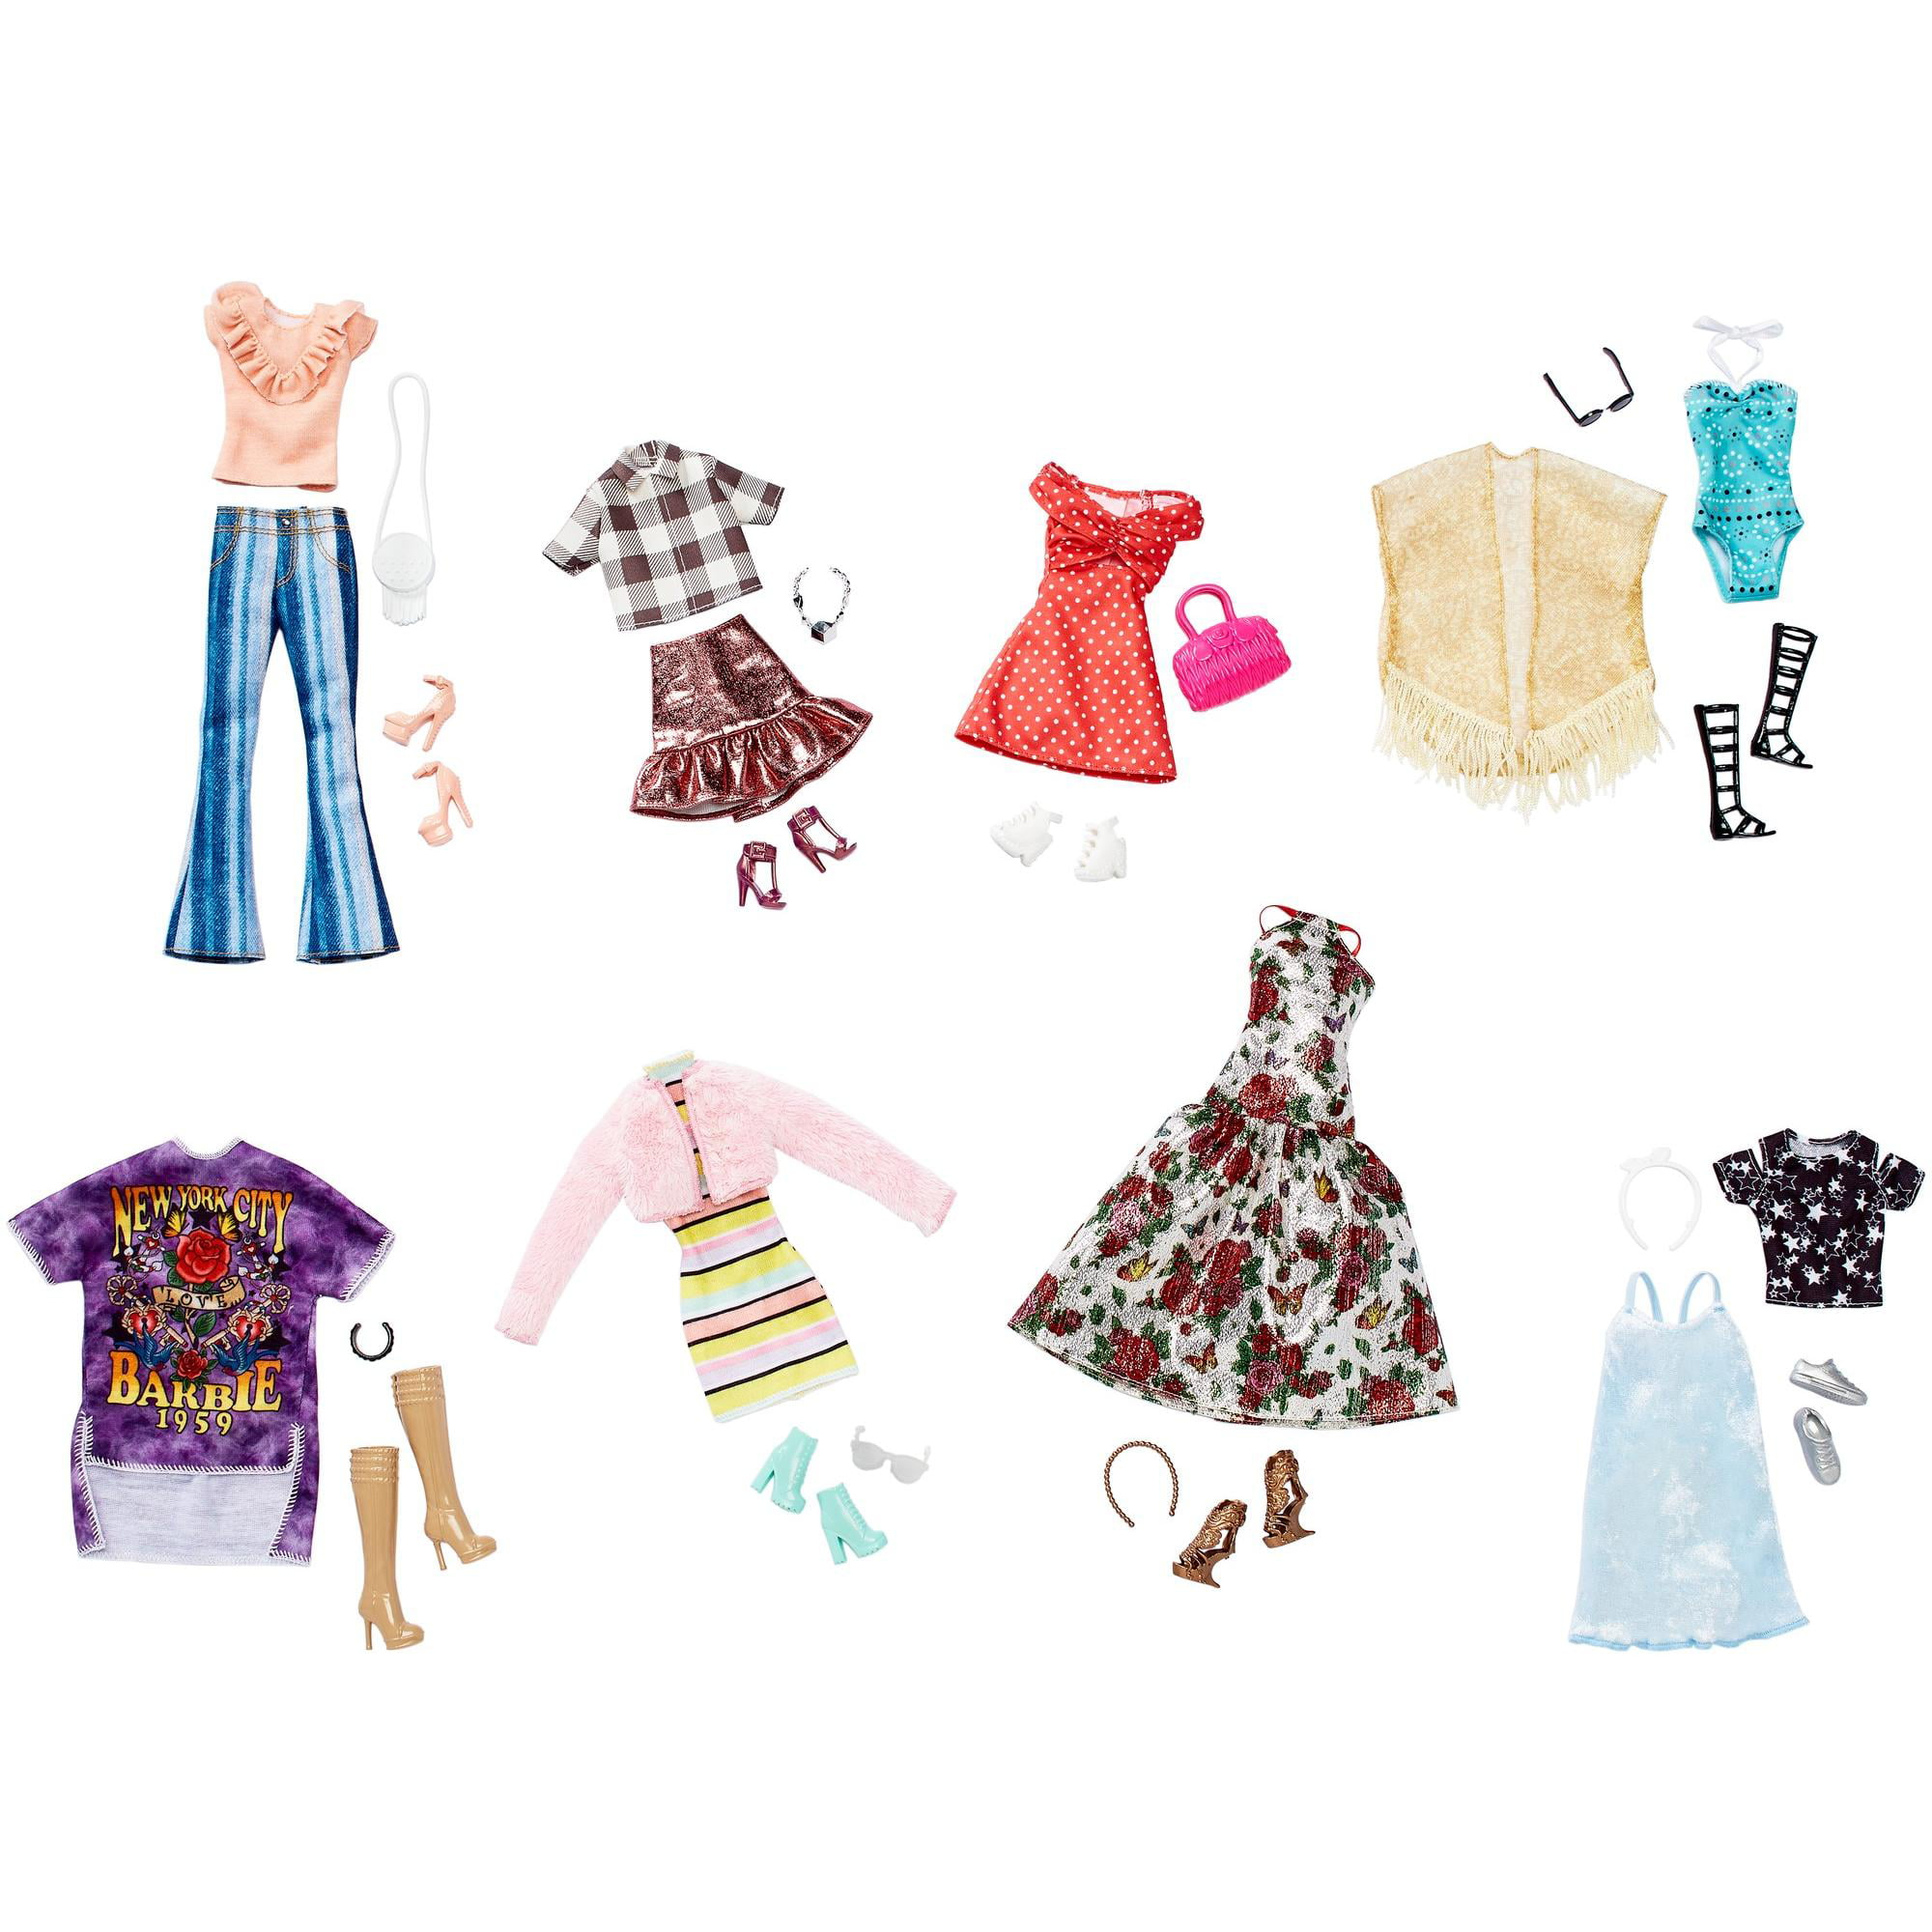 Barbie Fashions Multipack by Mattel